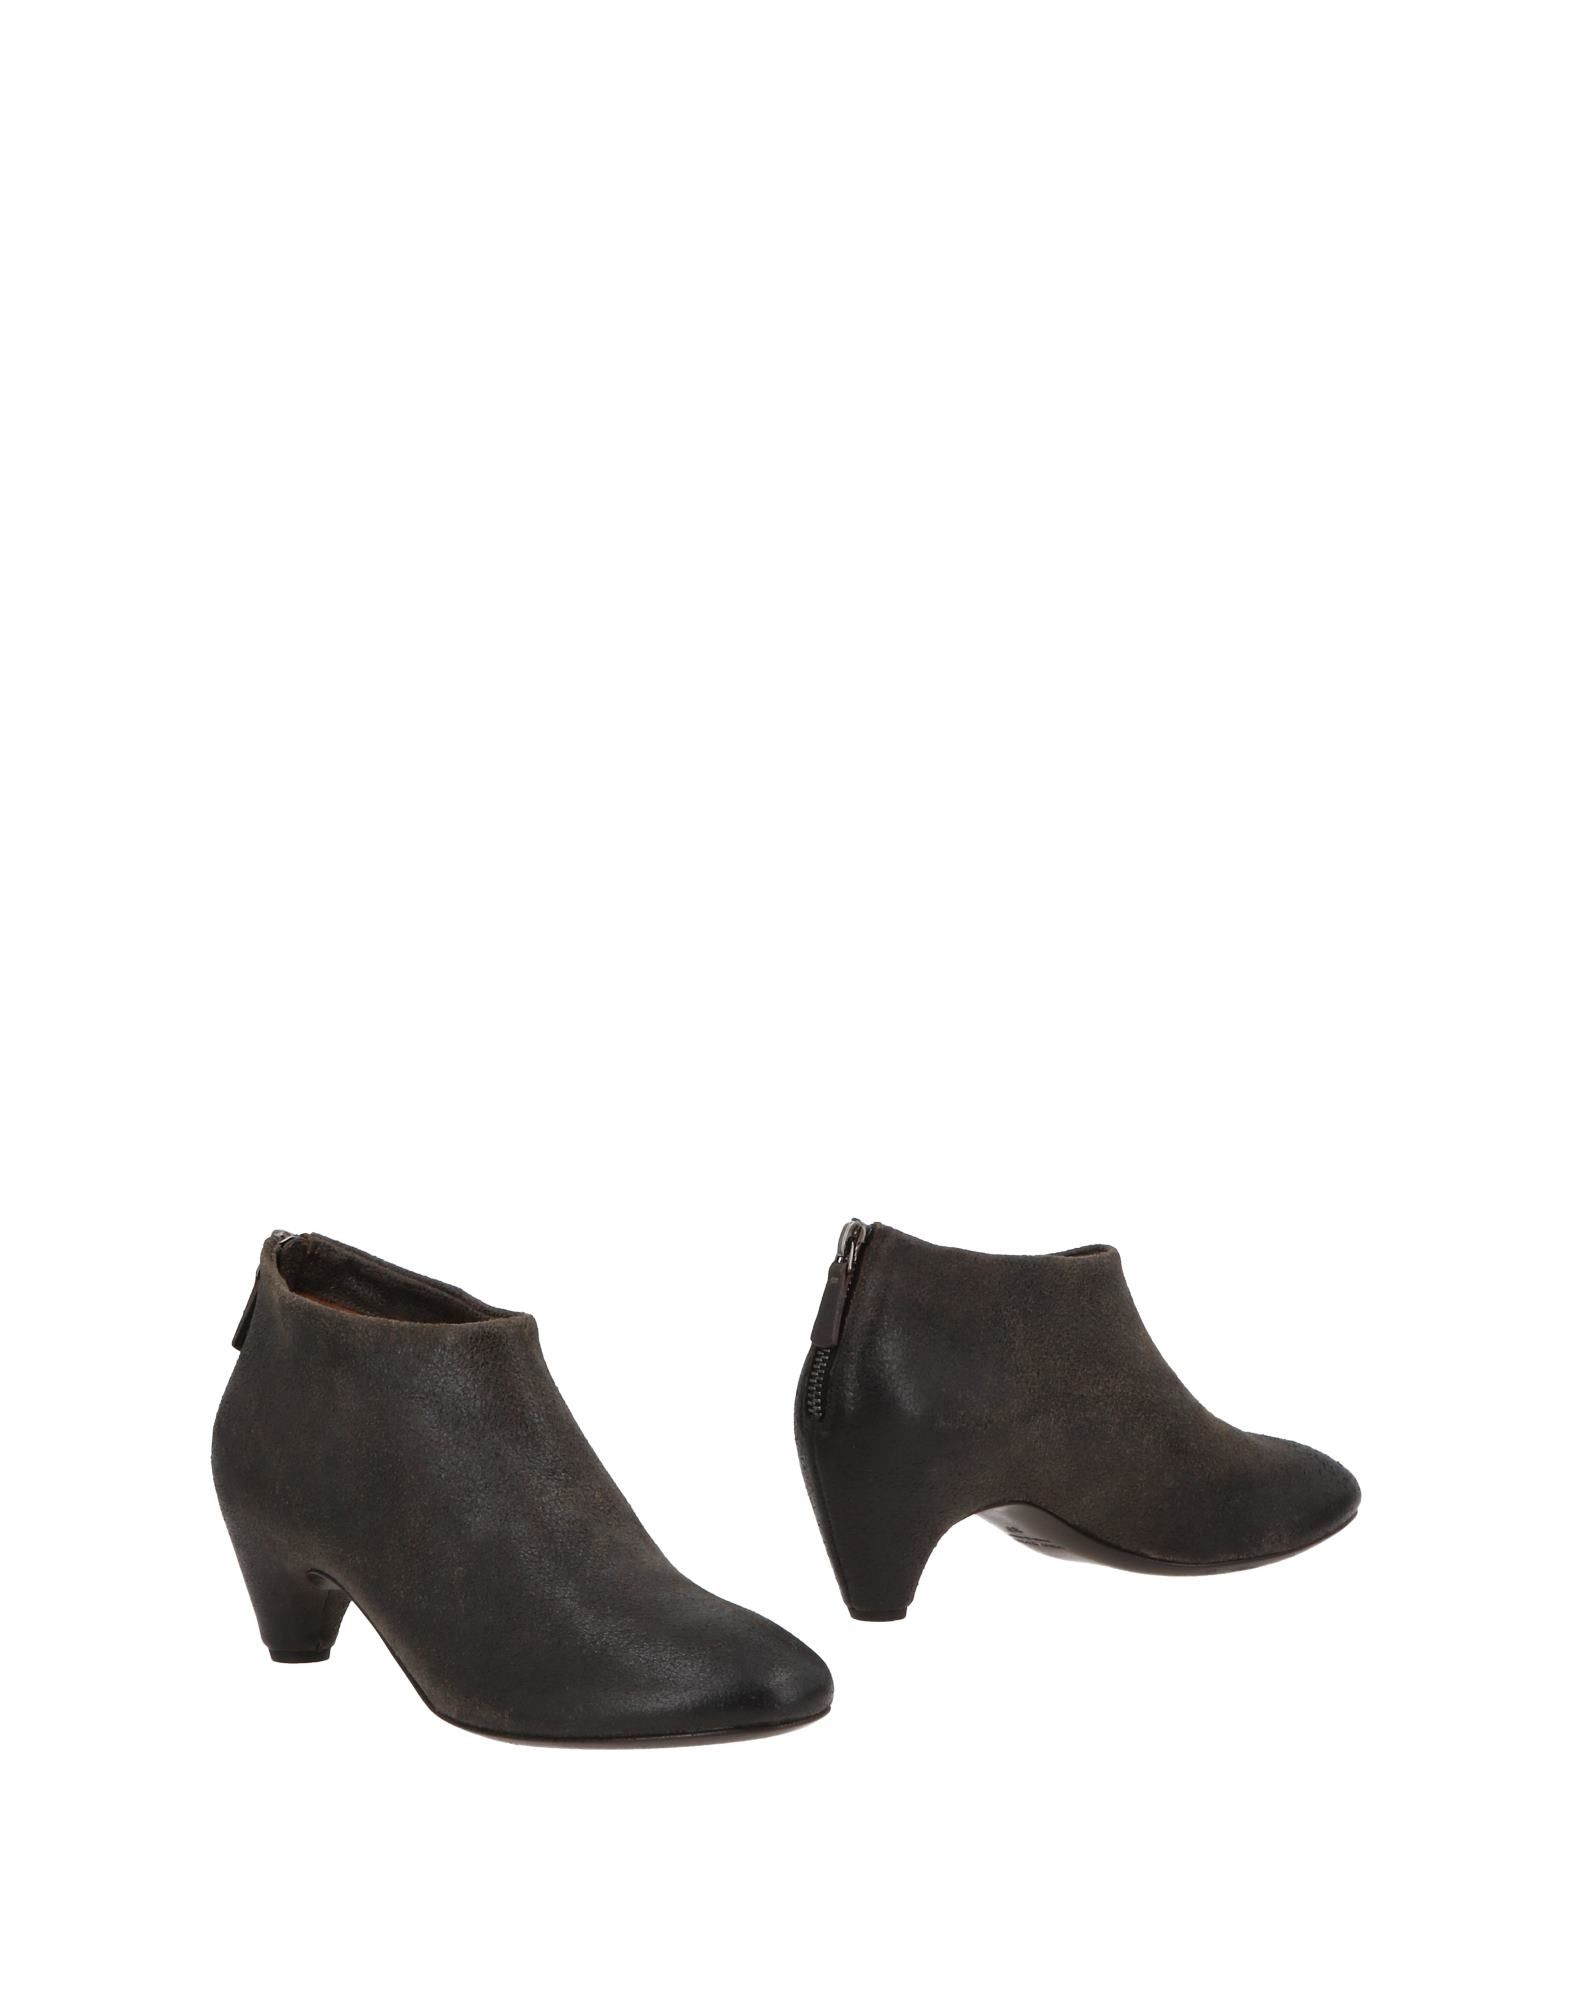 ROBERTO DEL CARLO Ankle Boot in Steel Grey